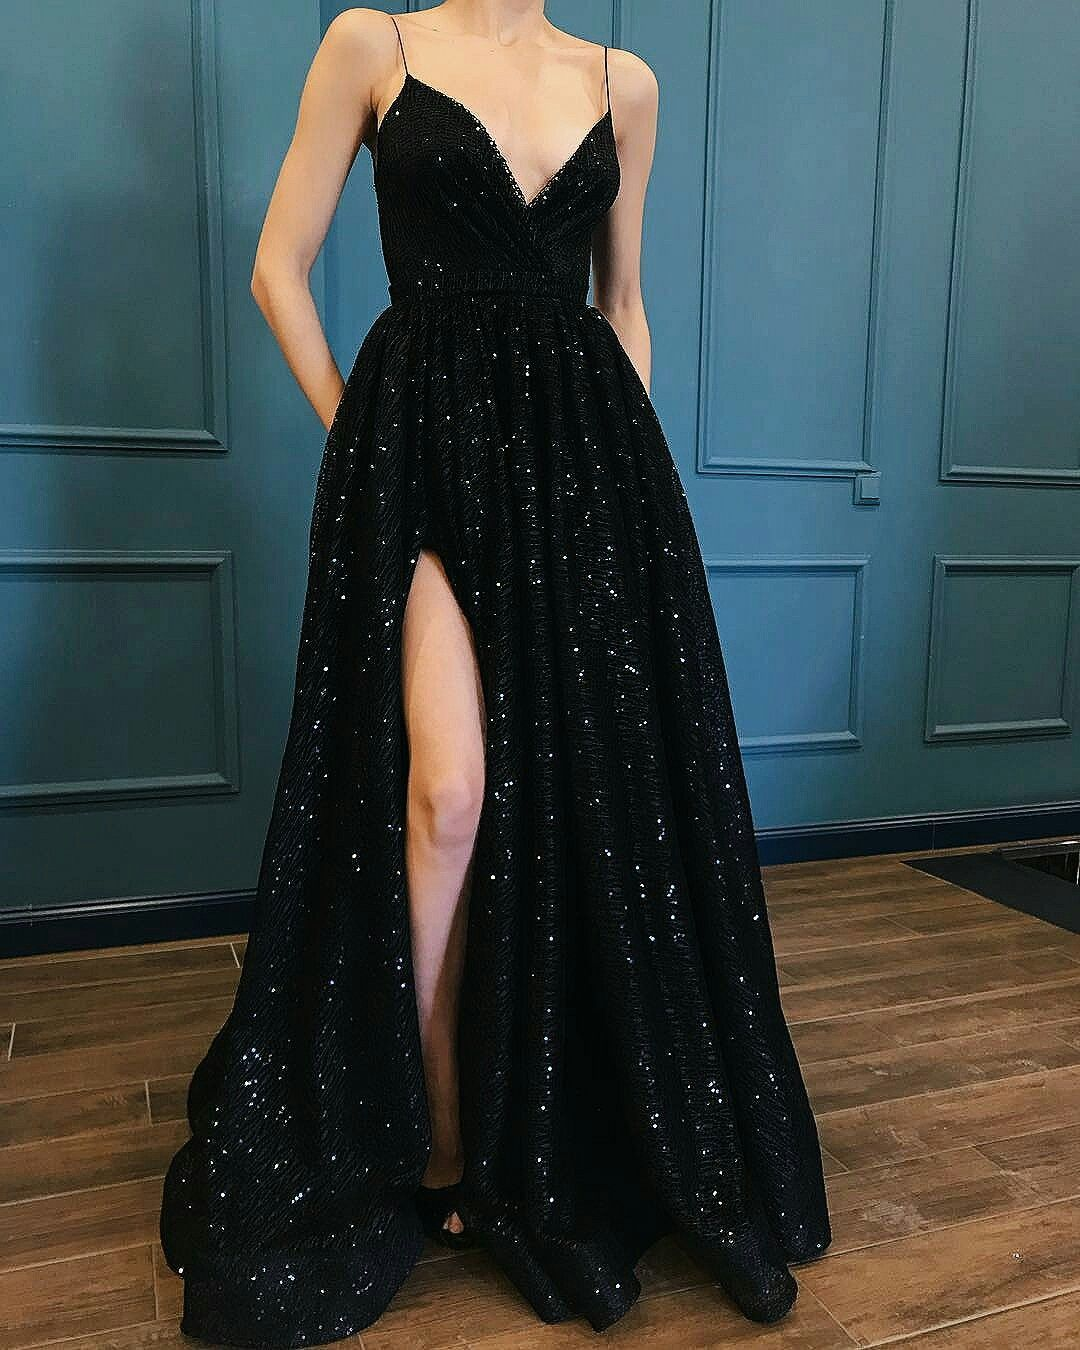 Pin by anthroporno on look pinterest prom gowns and clothes